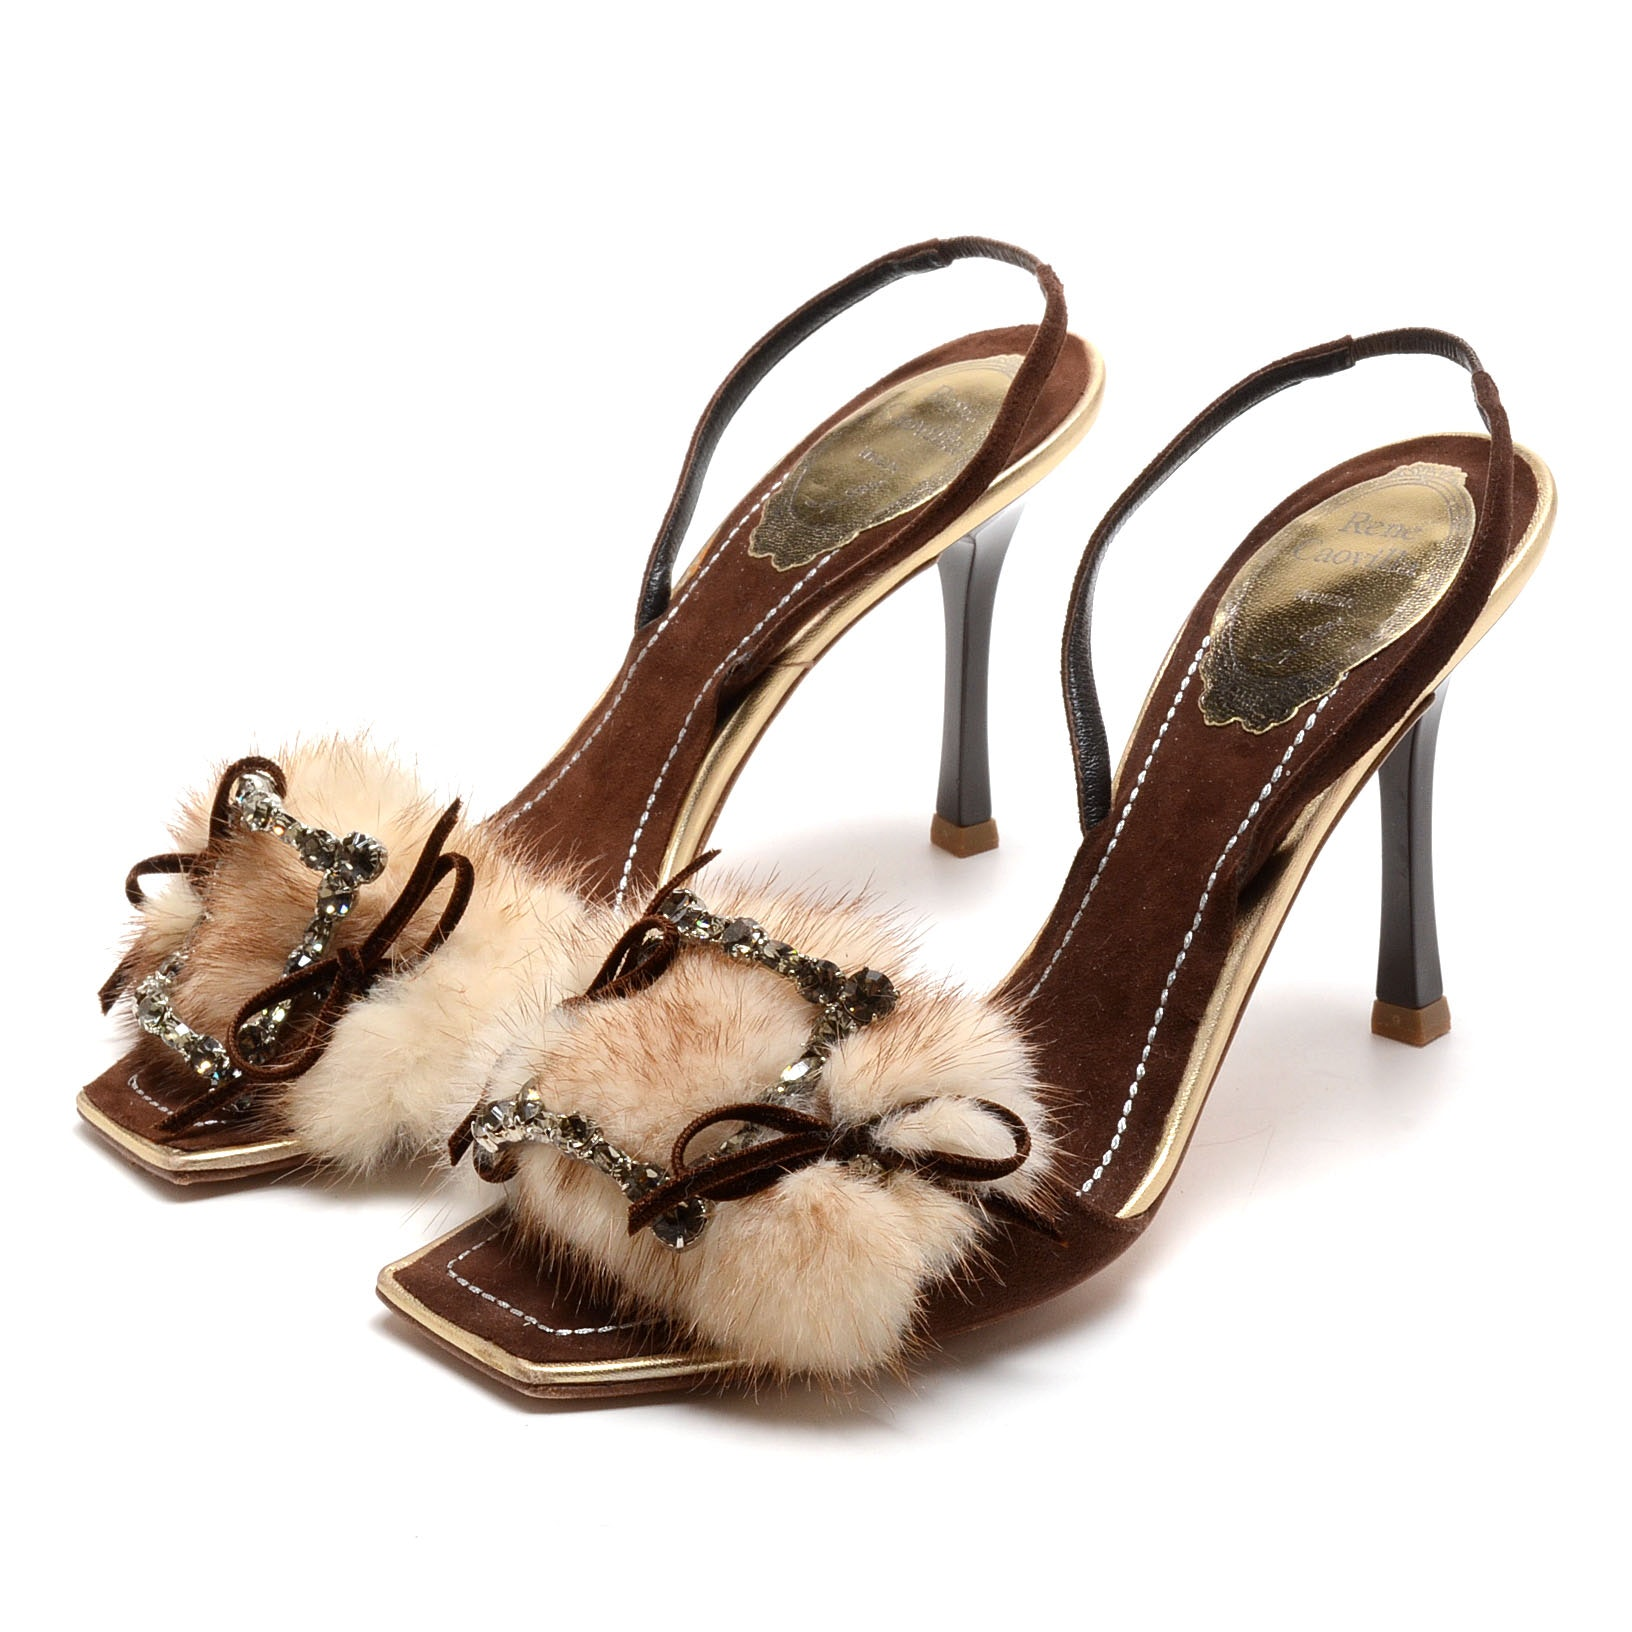 Rene Caovilla Gold Metallic and Brown Suede Leather Sling Back Dress Sandals Embellished with Crystal Rhinestones and Rabbit Fur Puff